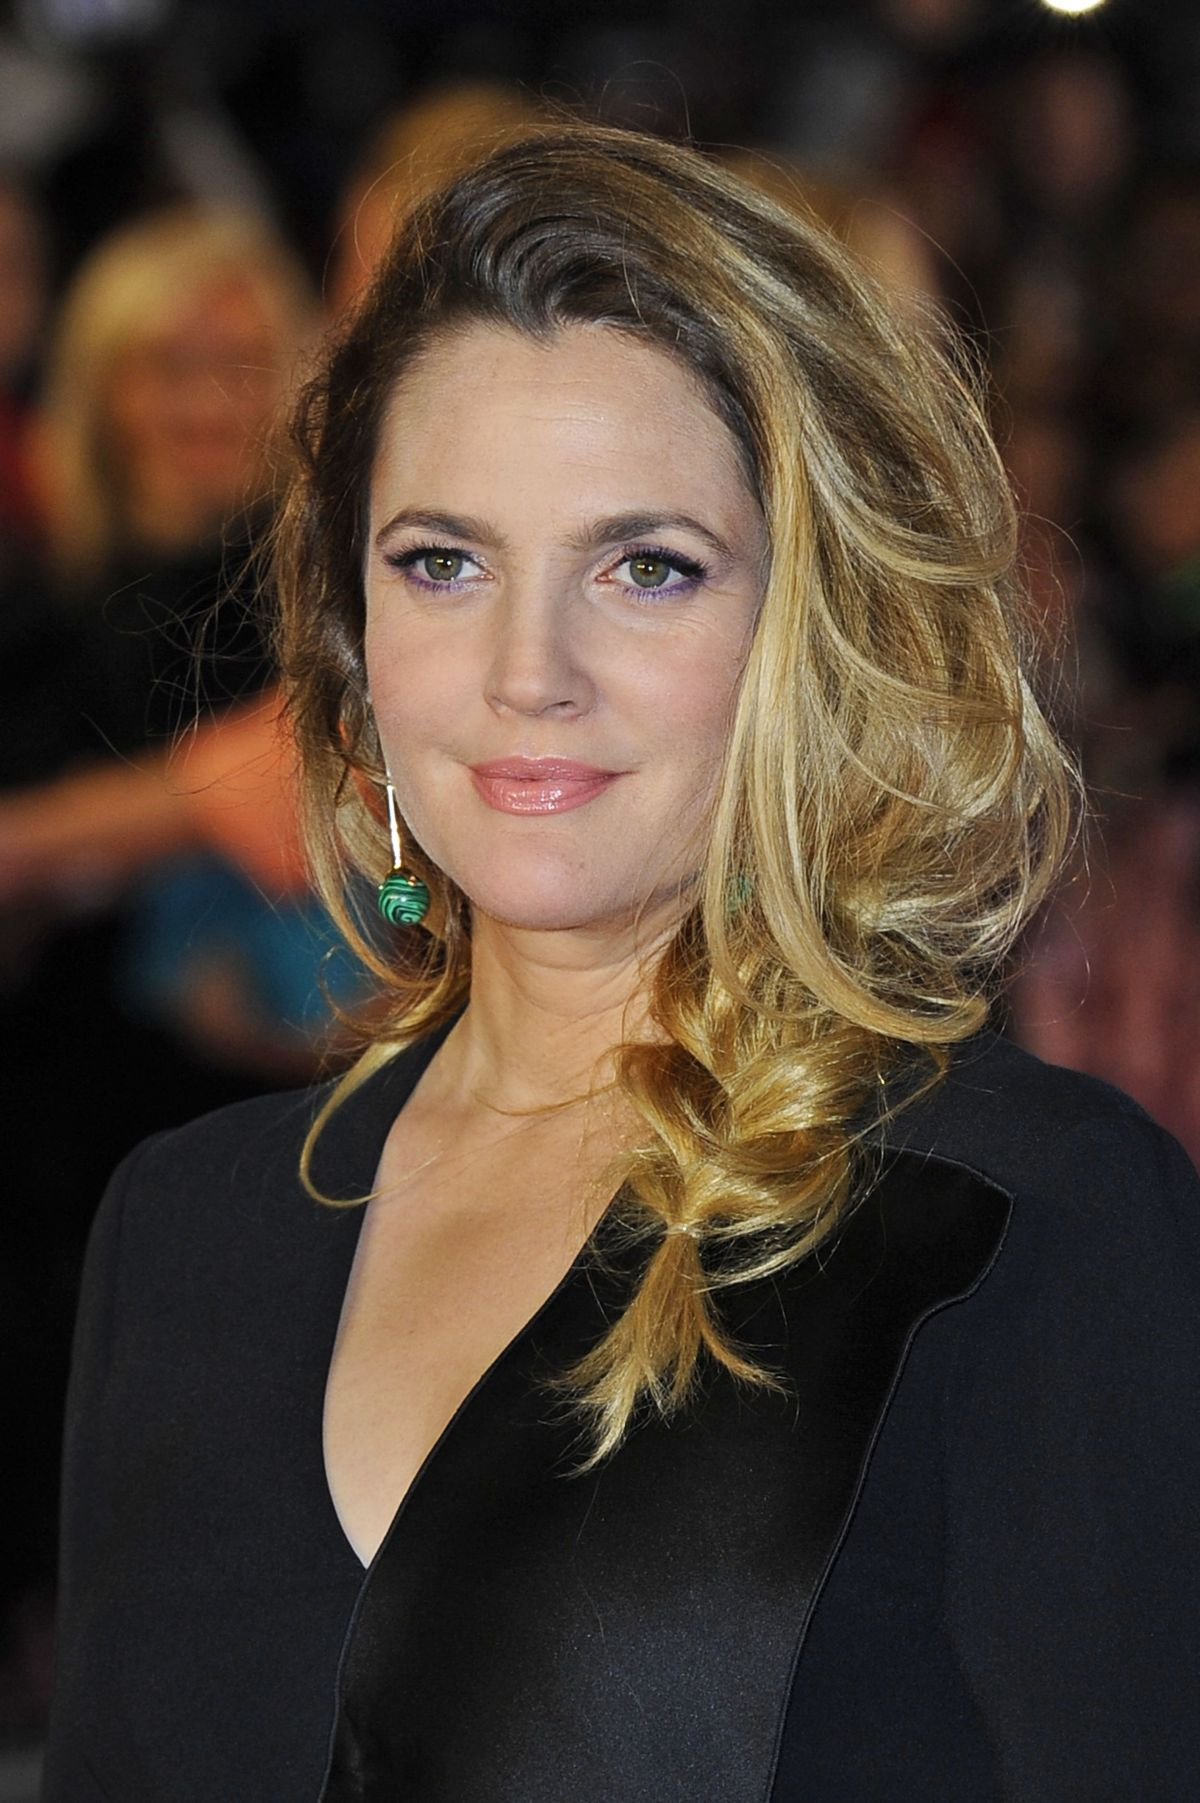 DREW BARRYMORE at Miss You Already Premiere in London 09/17/2015 Drew Barrymore